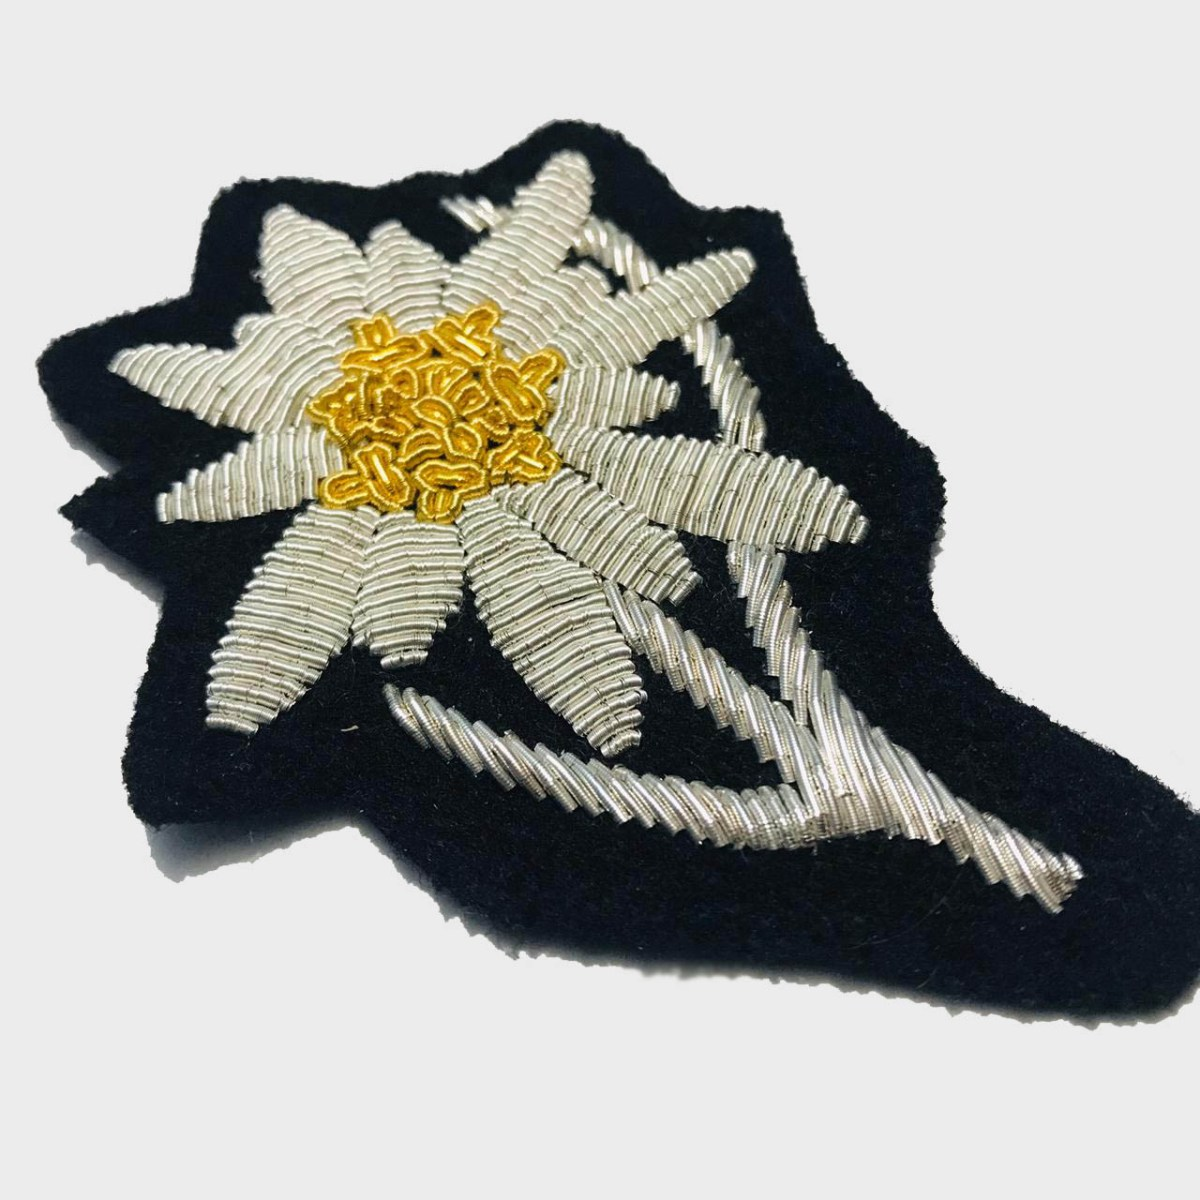 Edelweiss Flower Bullion Embroidered Badge , Sew-on Applique Patch - Edelweiss EmbroideredPatch Size # 3inches Sew-on backing Silverbullion wires embroidered on felt  4